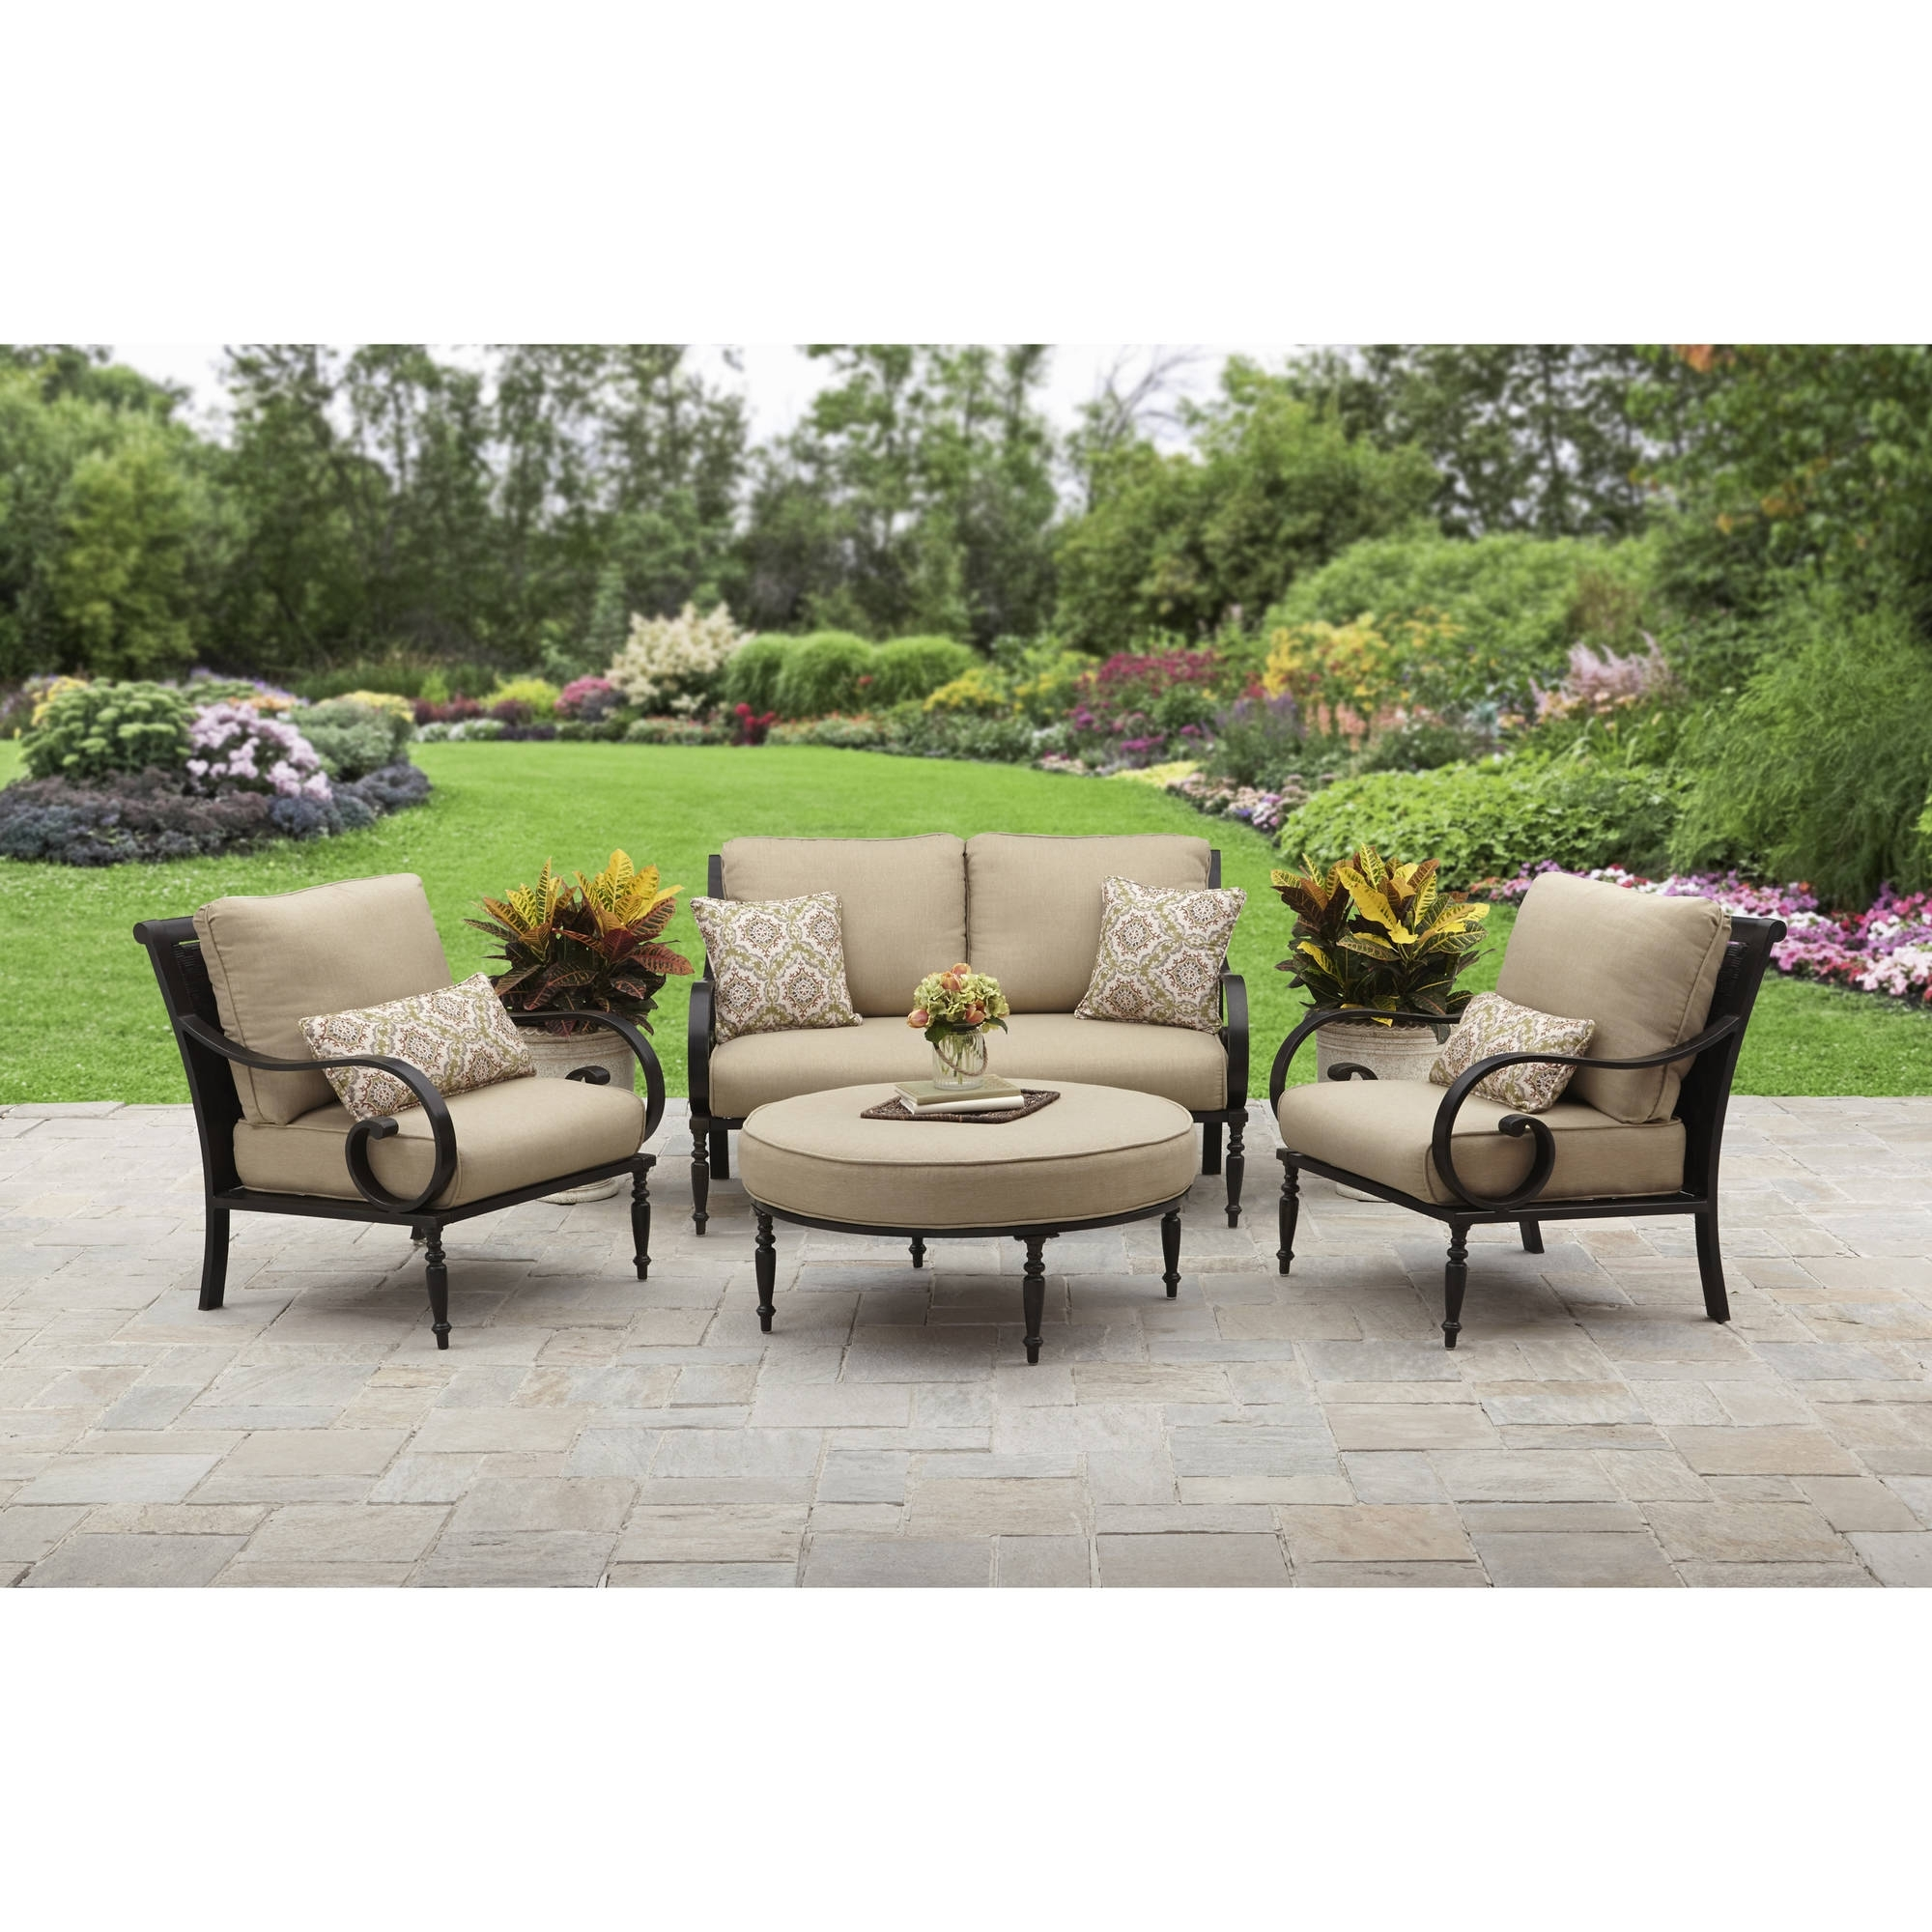 Orange Patio Furniture Tags : Metal Patio Conversation Sets Metal Regarding Best And Newest Metal Patio Conversation Sets (View 10 of 15)